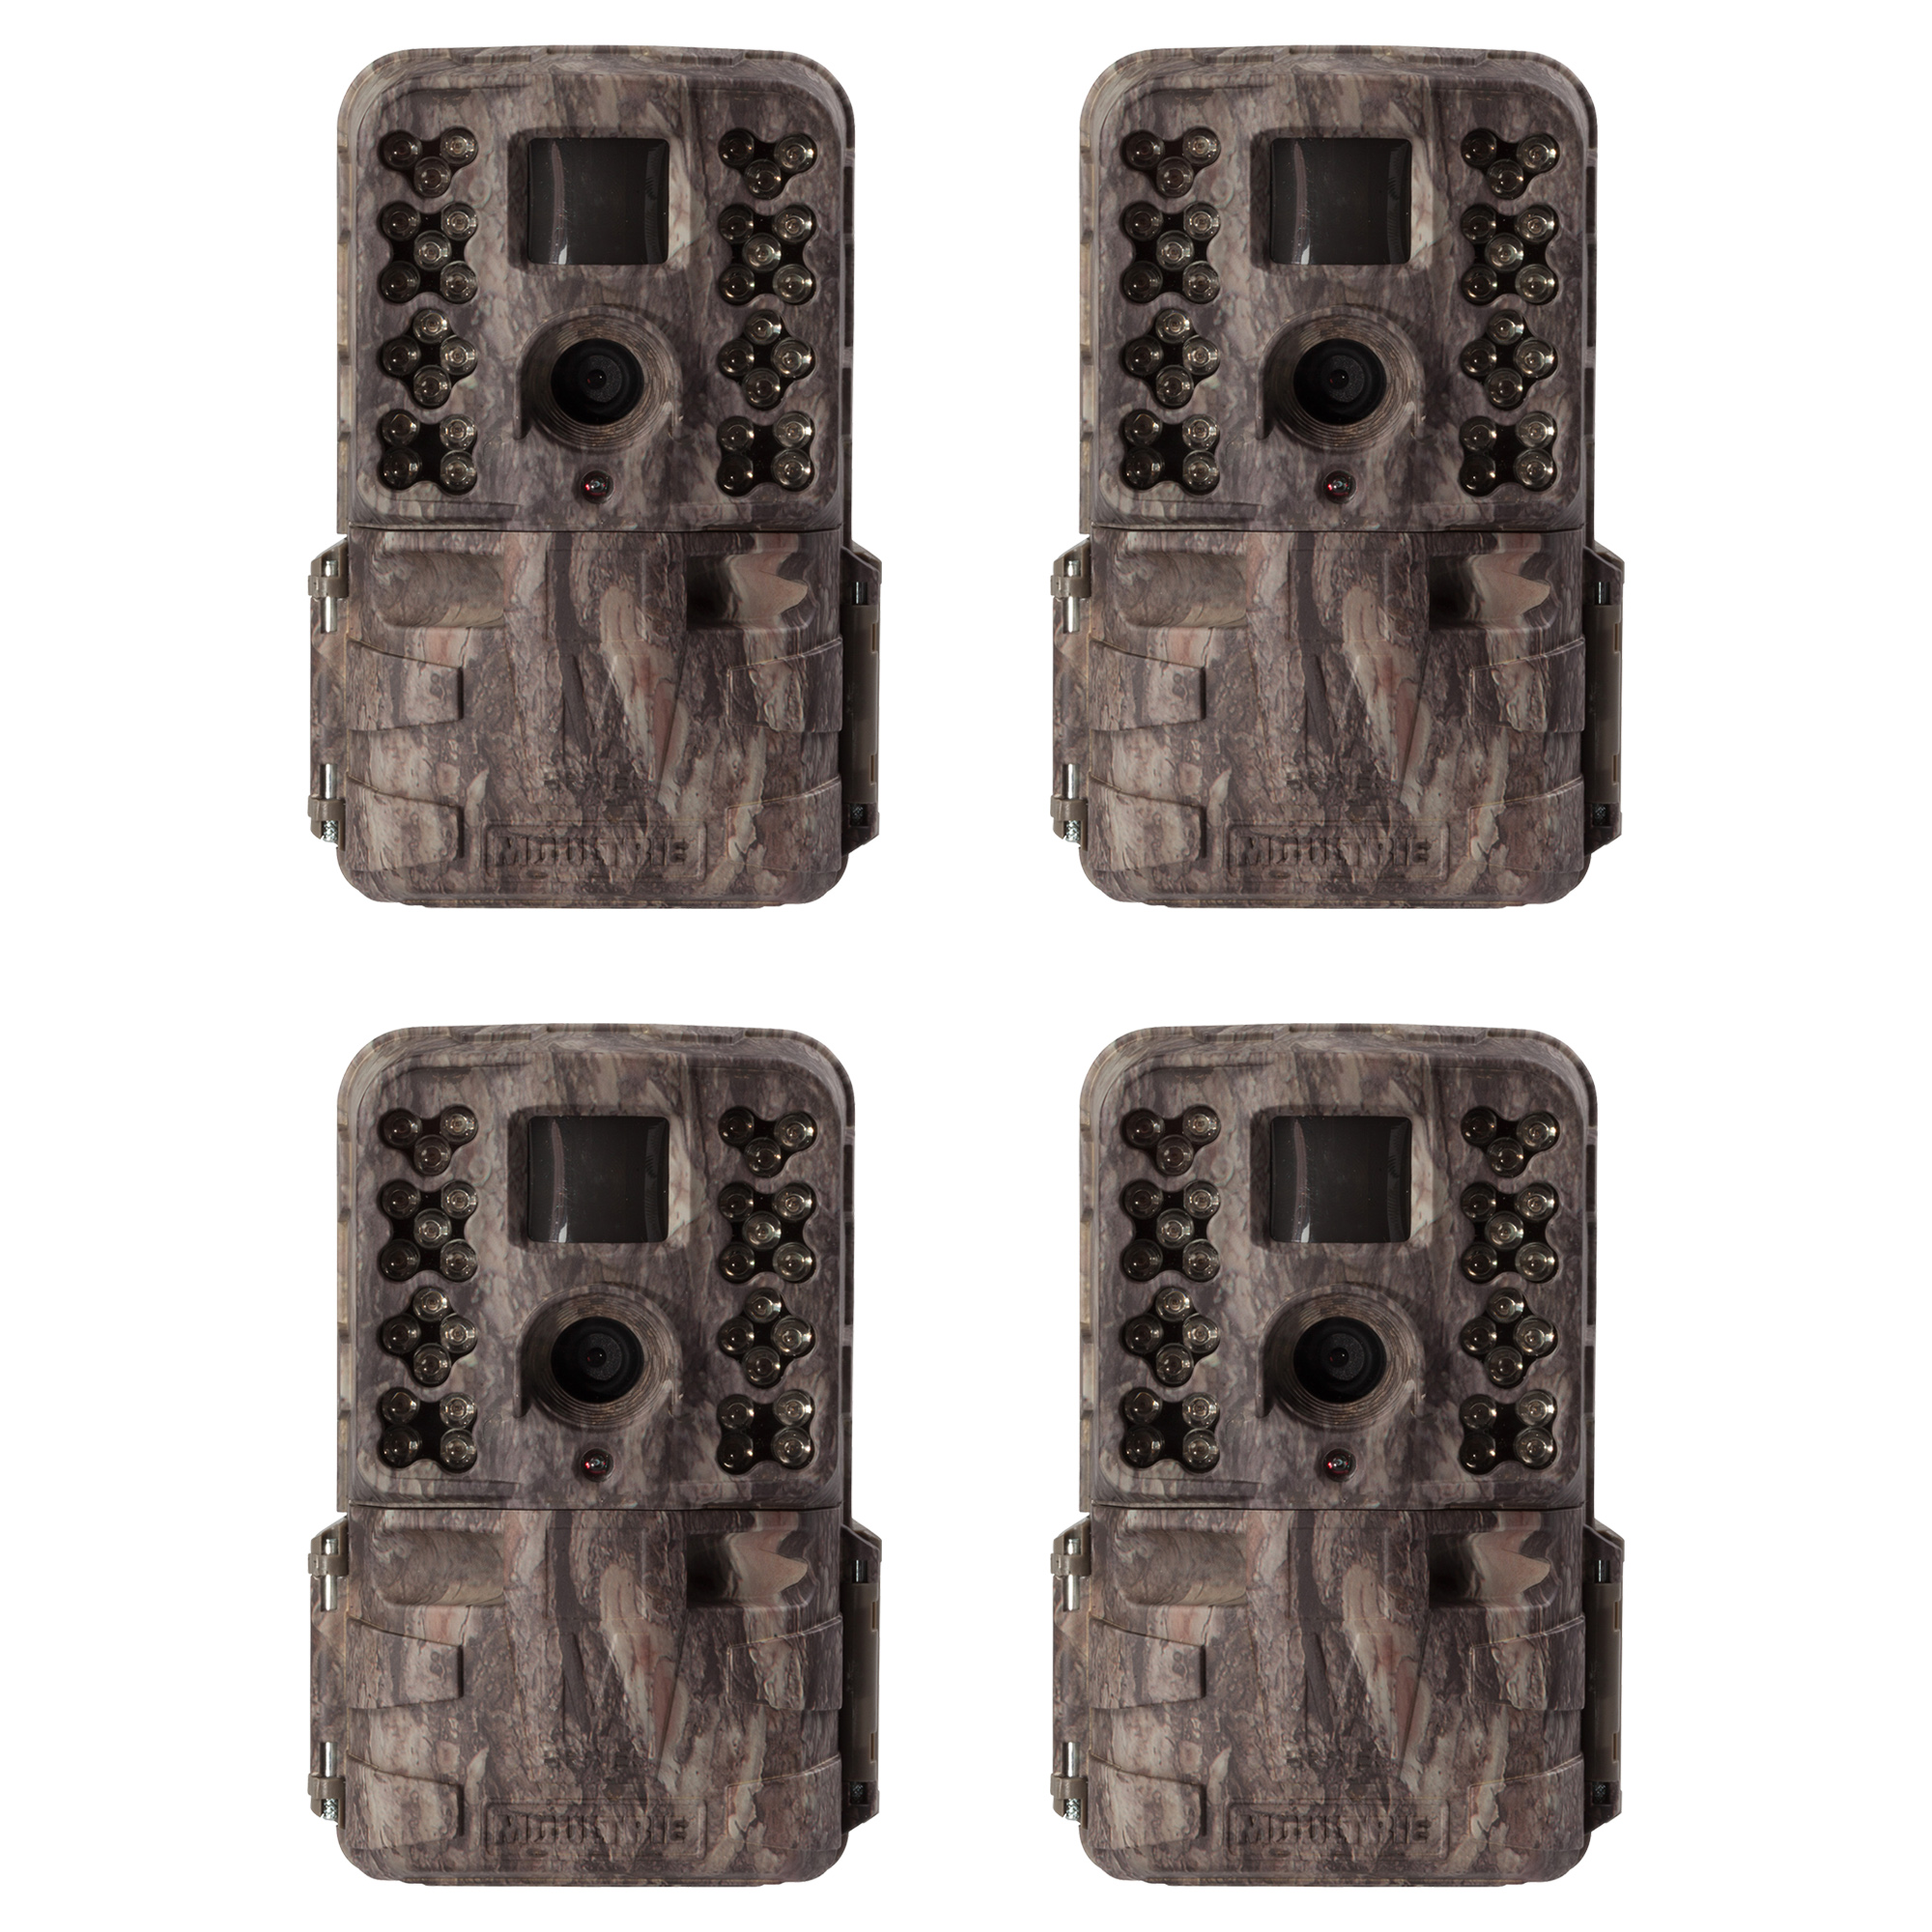 Moultrie M-40i 16MP 80' FHD Video No Glow Game Trail Camera, 4 Pack | MCG-13182